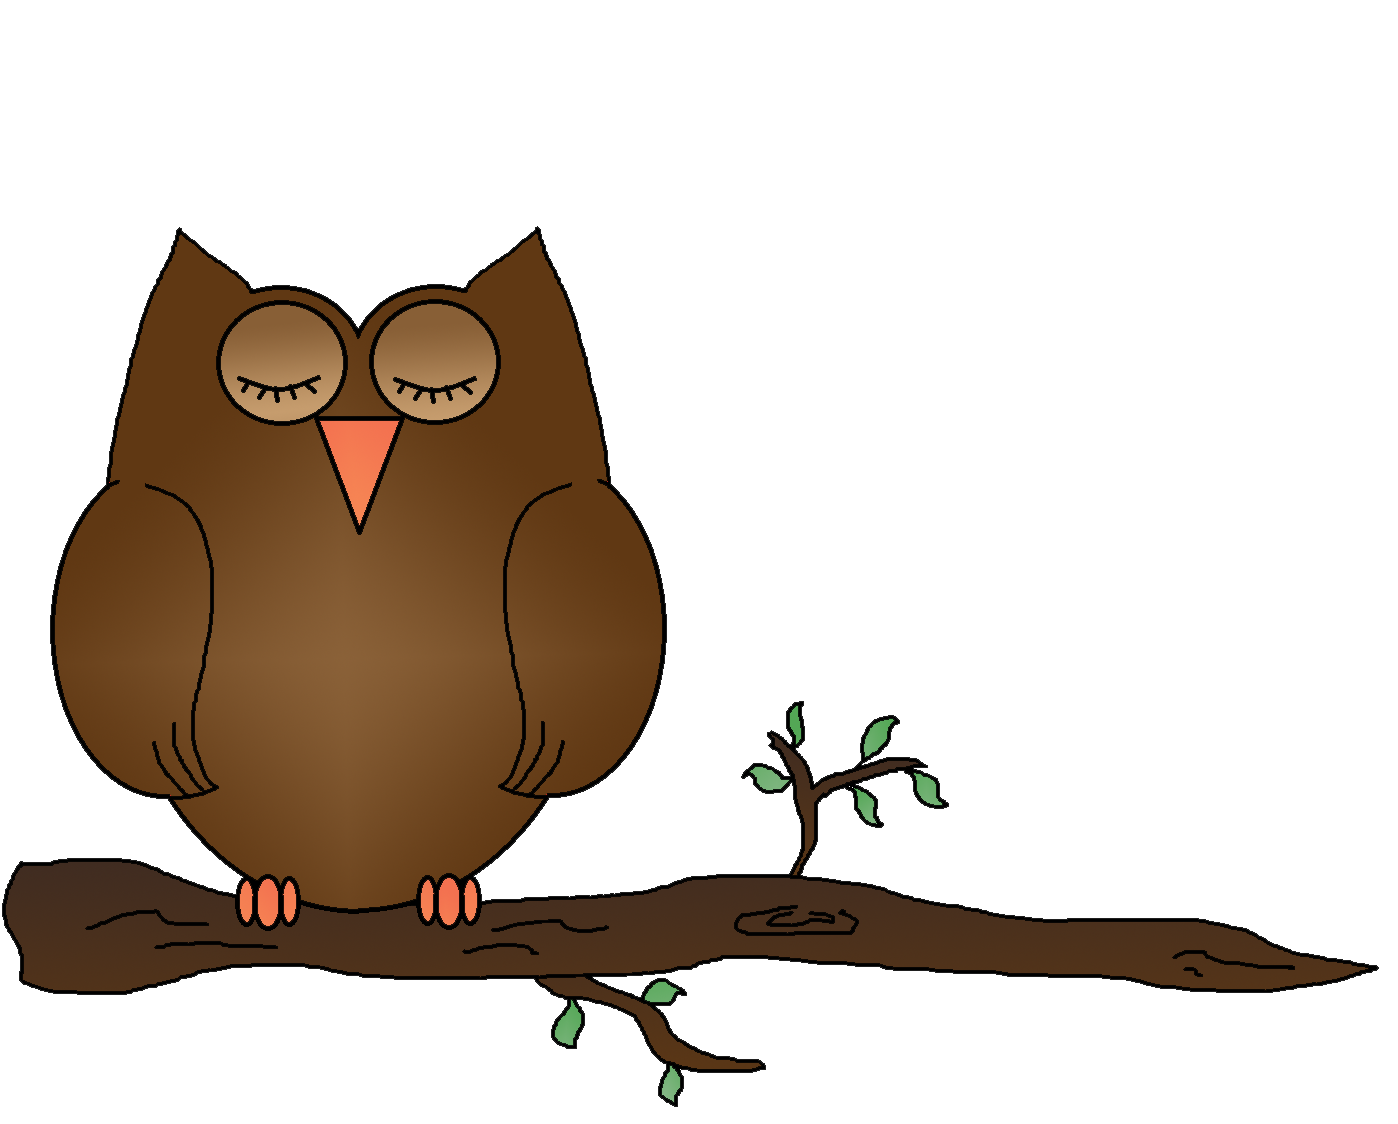 Owl on tree clipart clip black and white Owl Clipart For Kids at GetDrawings.com | Free for personal use Owl ... clip black and white